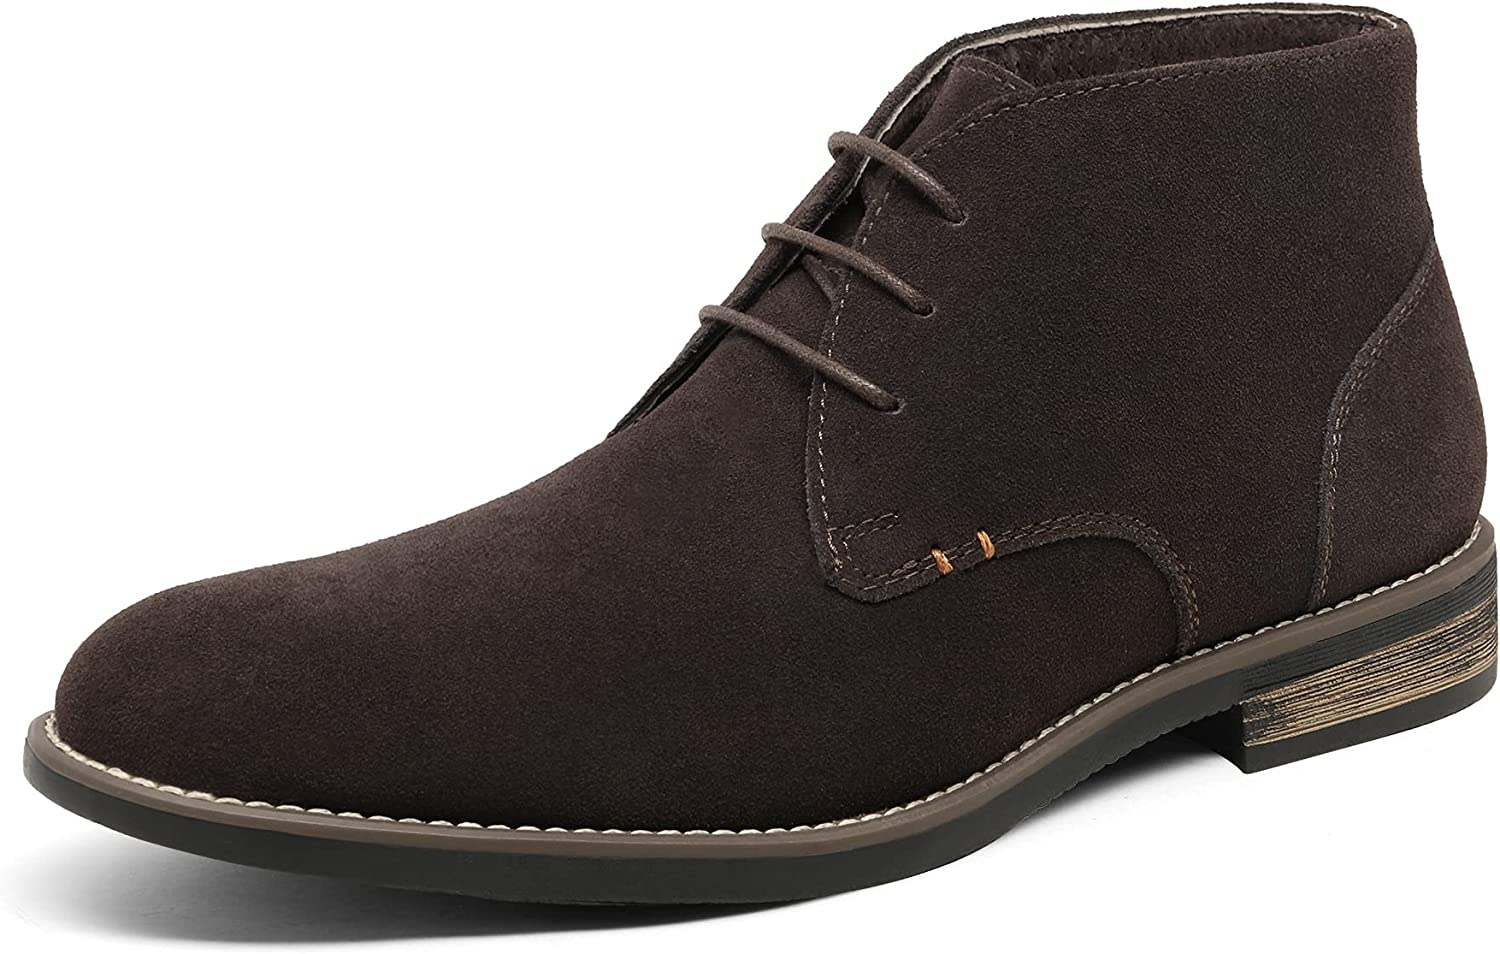 Bruno Marc Men's Suede Leather Lace Up Oxfords Chukka Ankle Boots